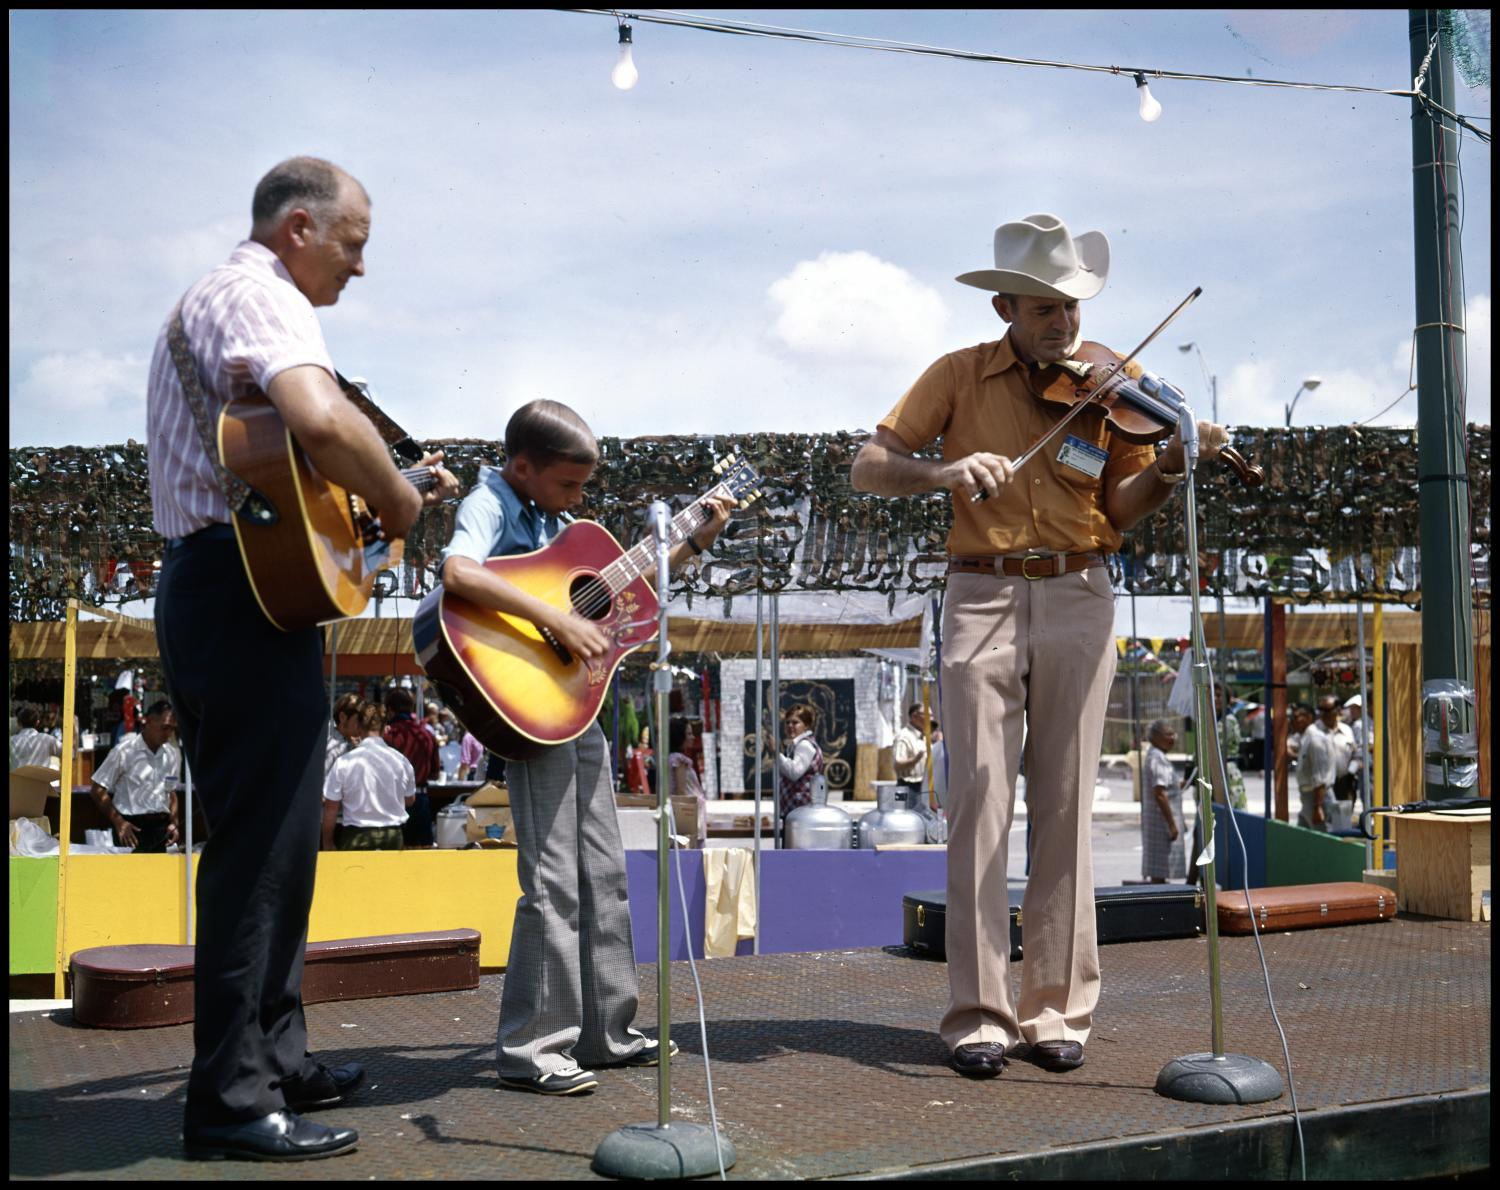 [Musicians Performing on Stage], Photograph of fiddler, Garland Gainer, playing with guitarists, Keith Worrell (center) and Vernon Worrell, at the second annual Texas Folklife Festival. The musicians are performing on a flatbed trailer and are standing in front of two microphones. Festival booths and participants are seen in the background.,